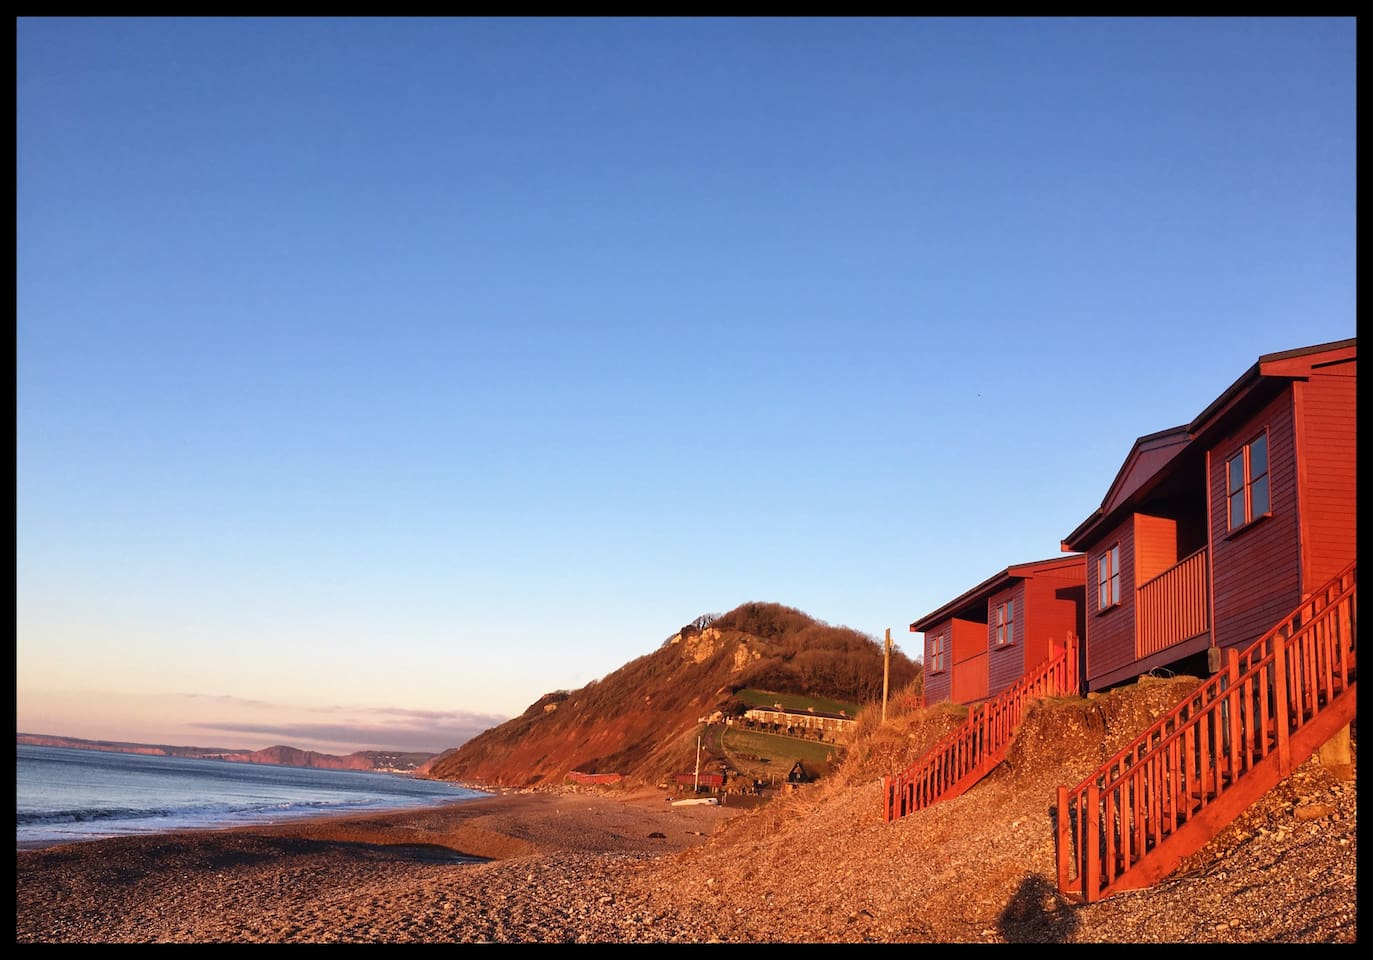 Swift and Curlew Chalet, side by side in the sunset